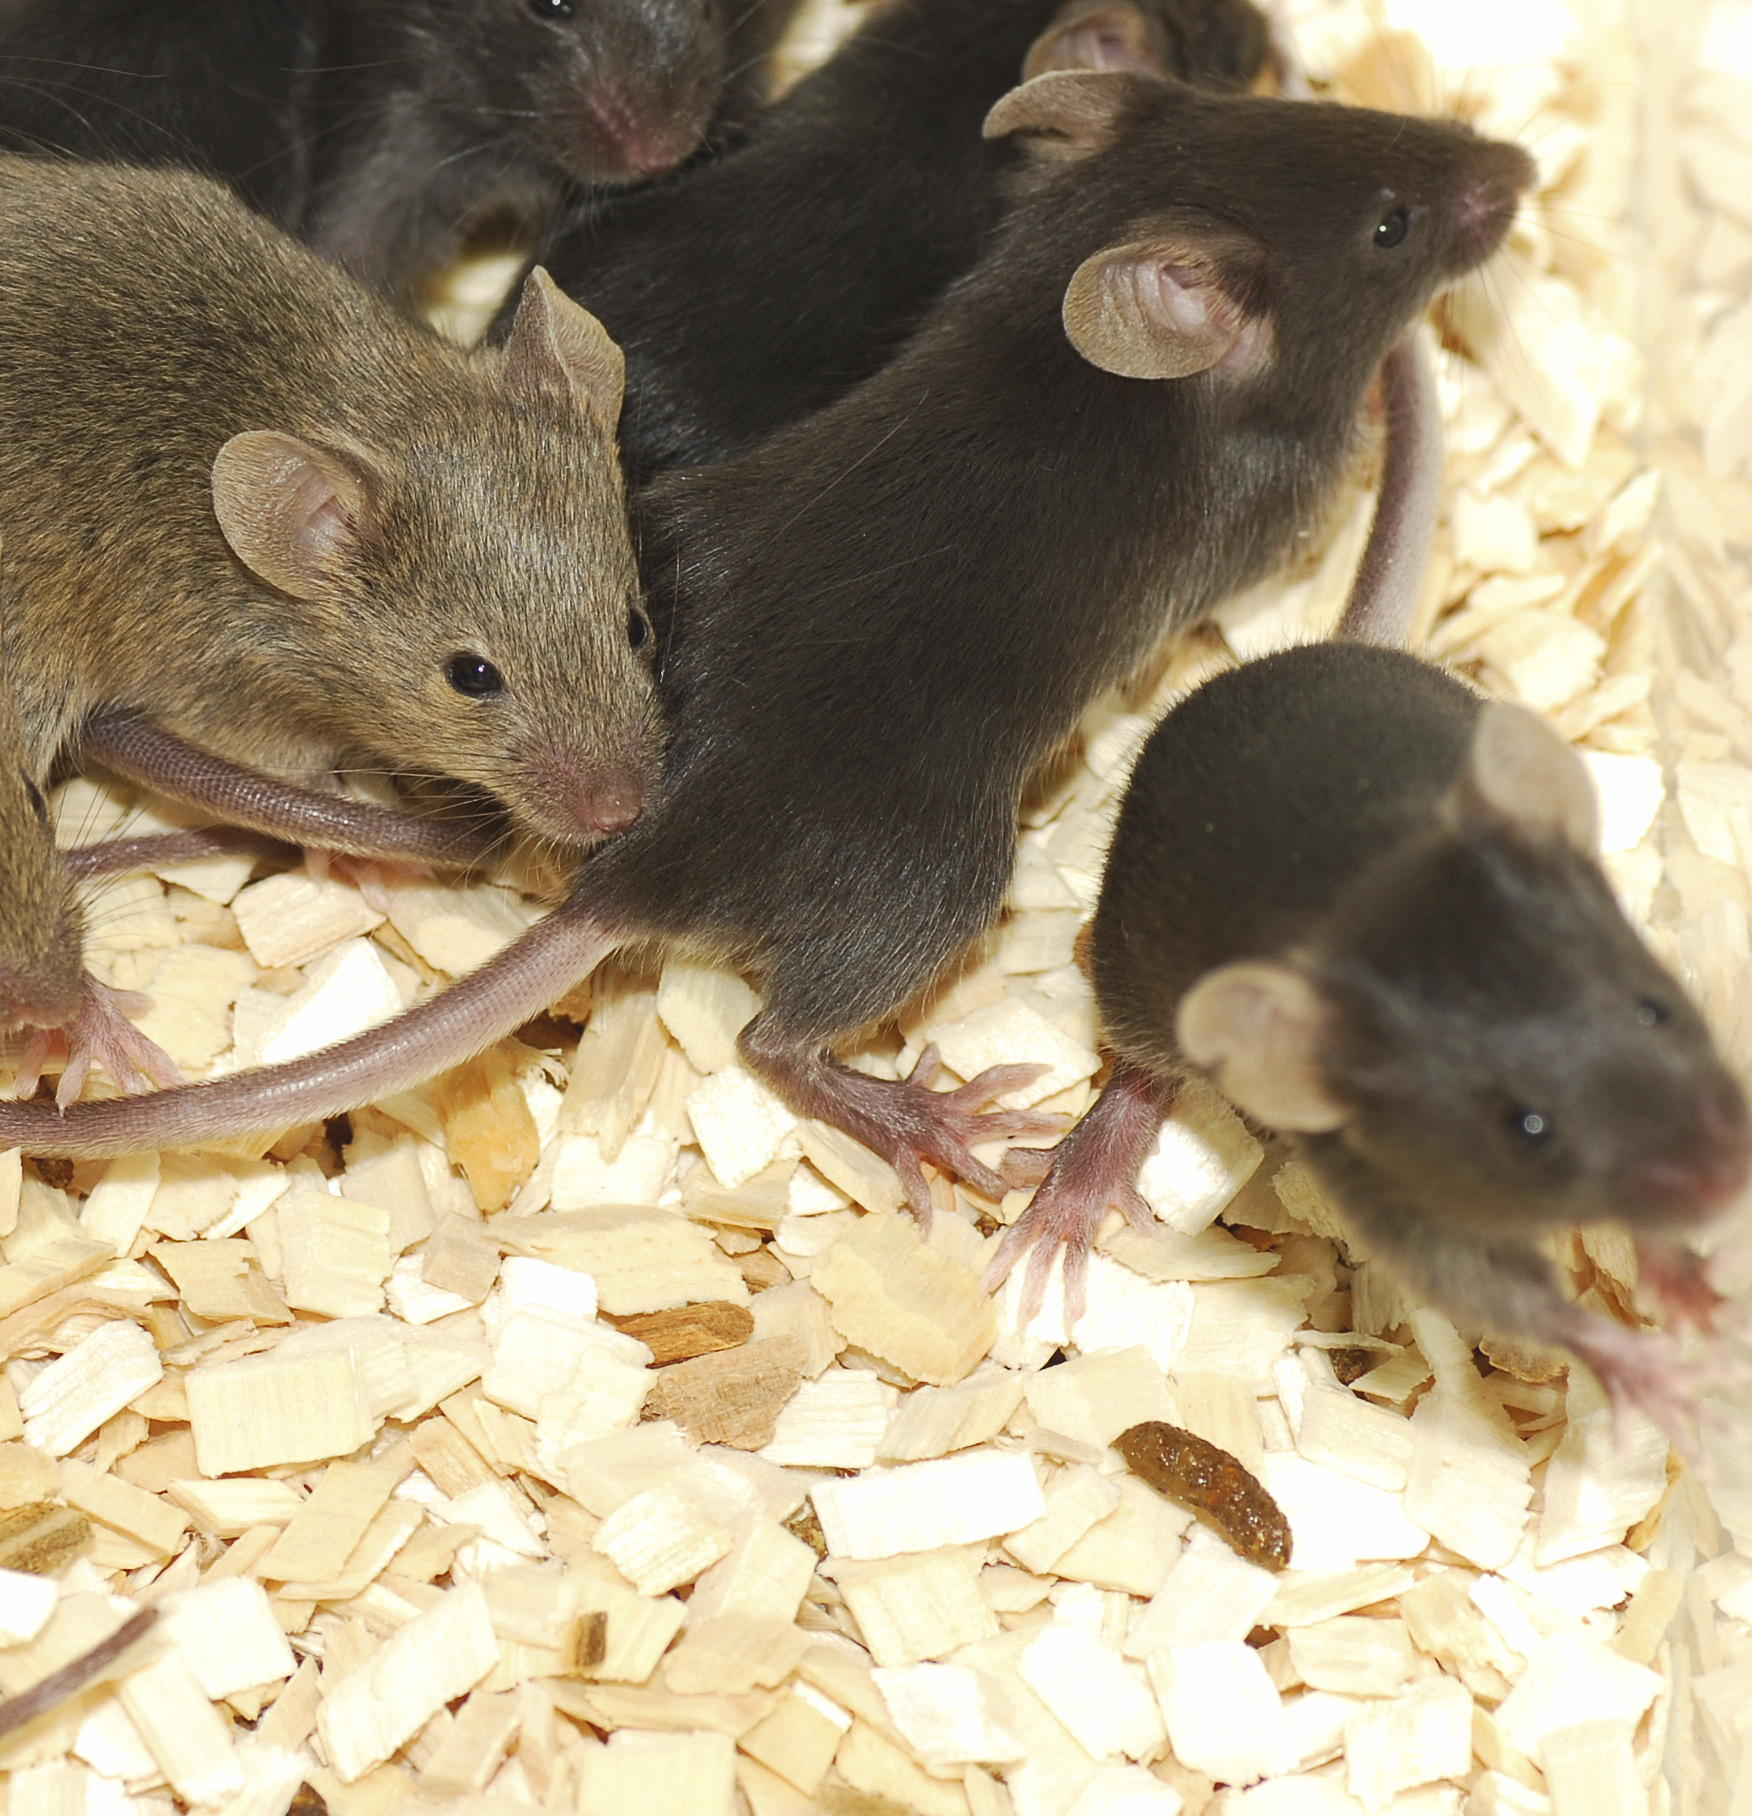 mice_crowded_brown_cropped.jpg